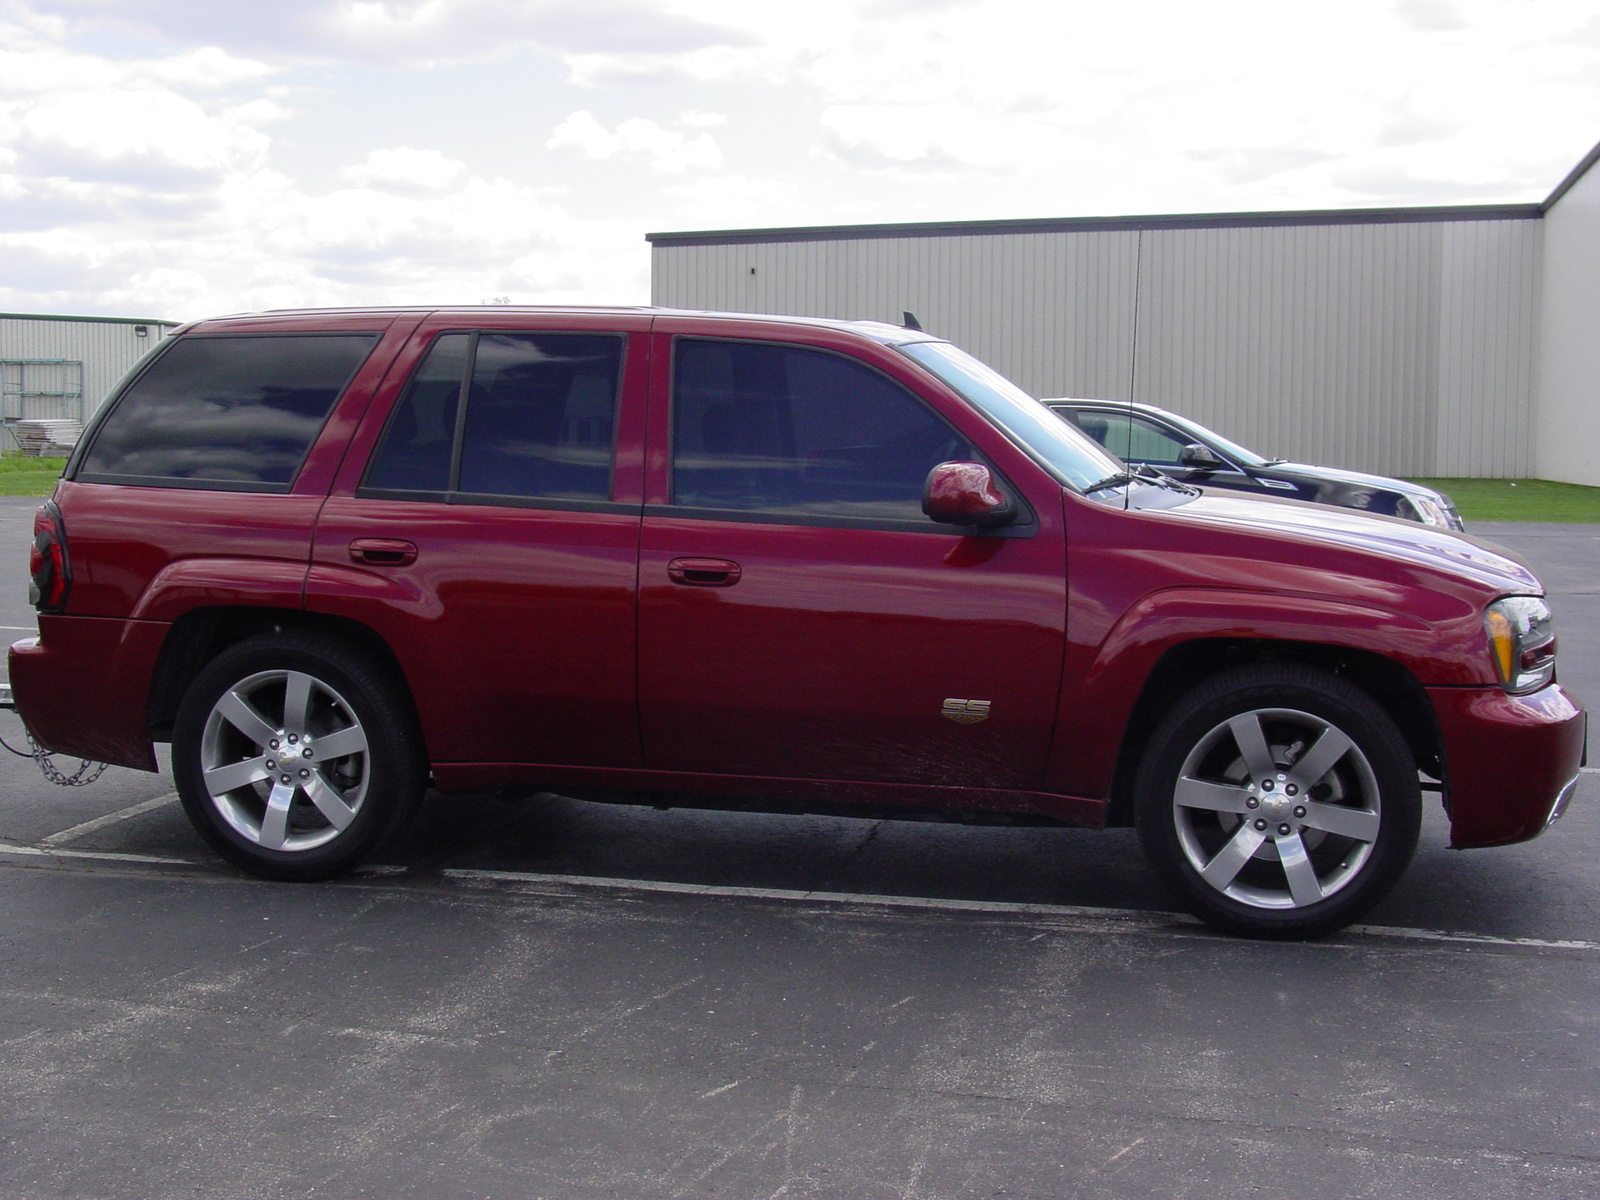 Chevrolet TrailBlazer 6.0 2008 photo - 5